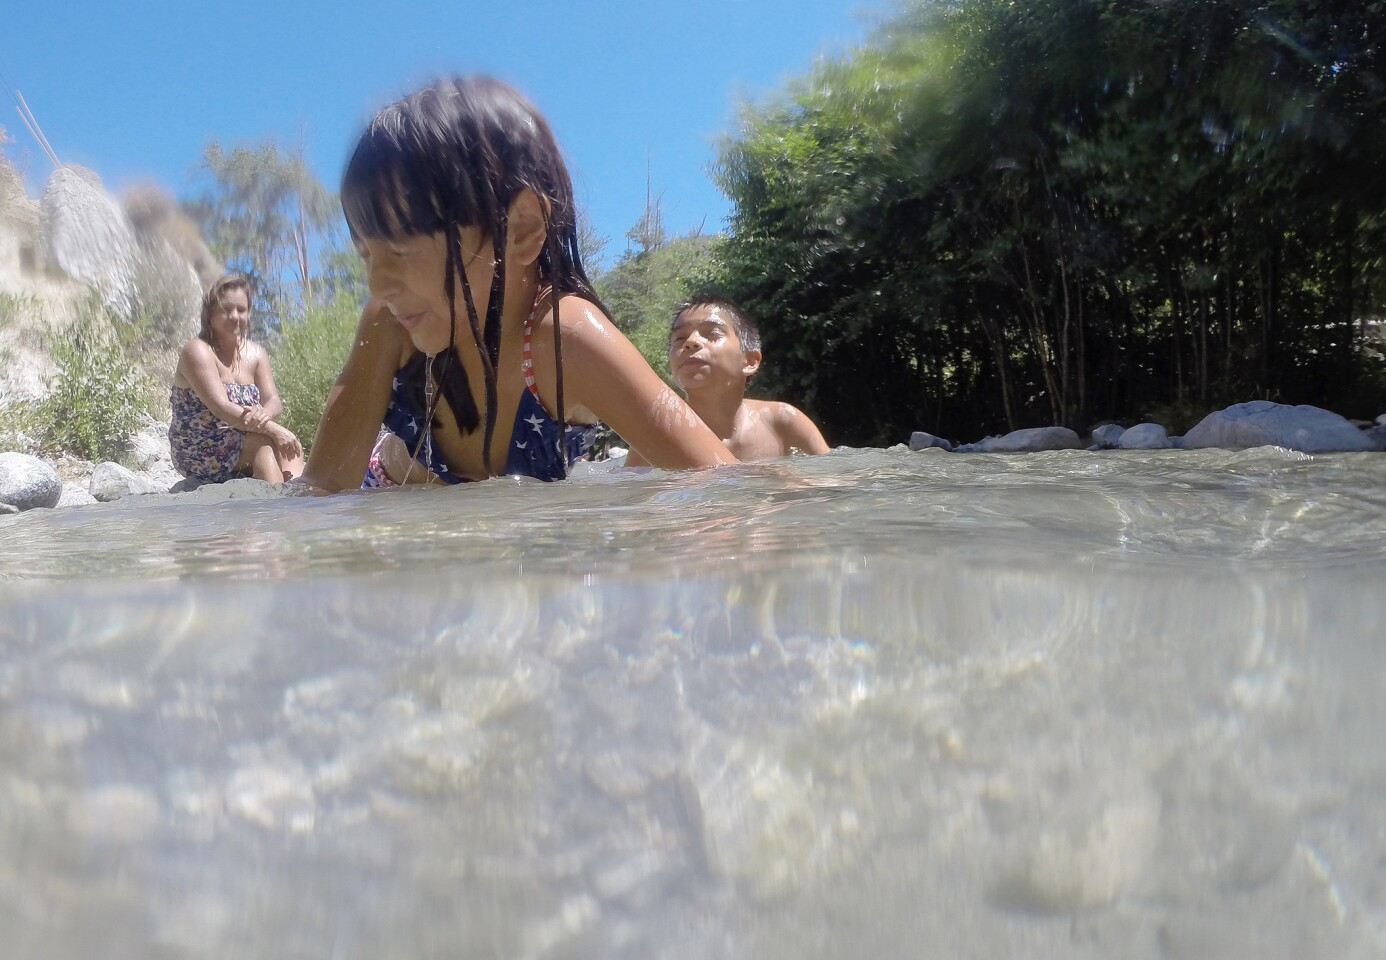 With temperatures scorching to 106 degrees, Kimberly Fuentes, 6, and her brother Anthony Villanueva, 11, of Riverside cool off in Lytle Creek, Calif.